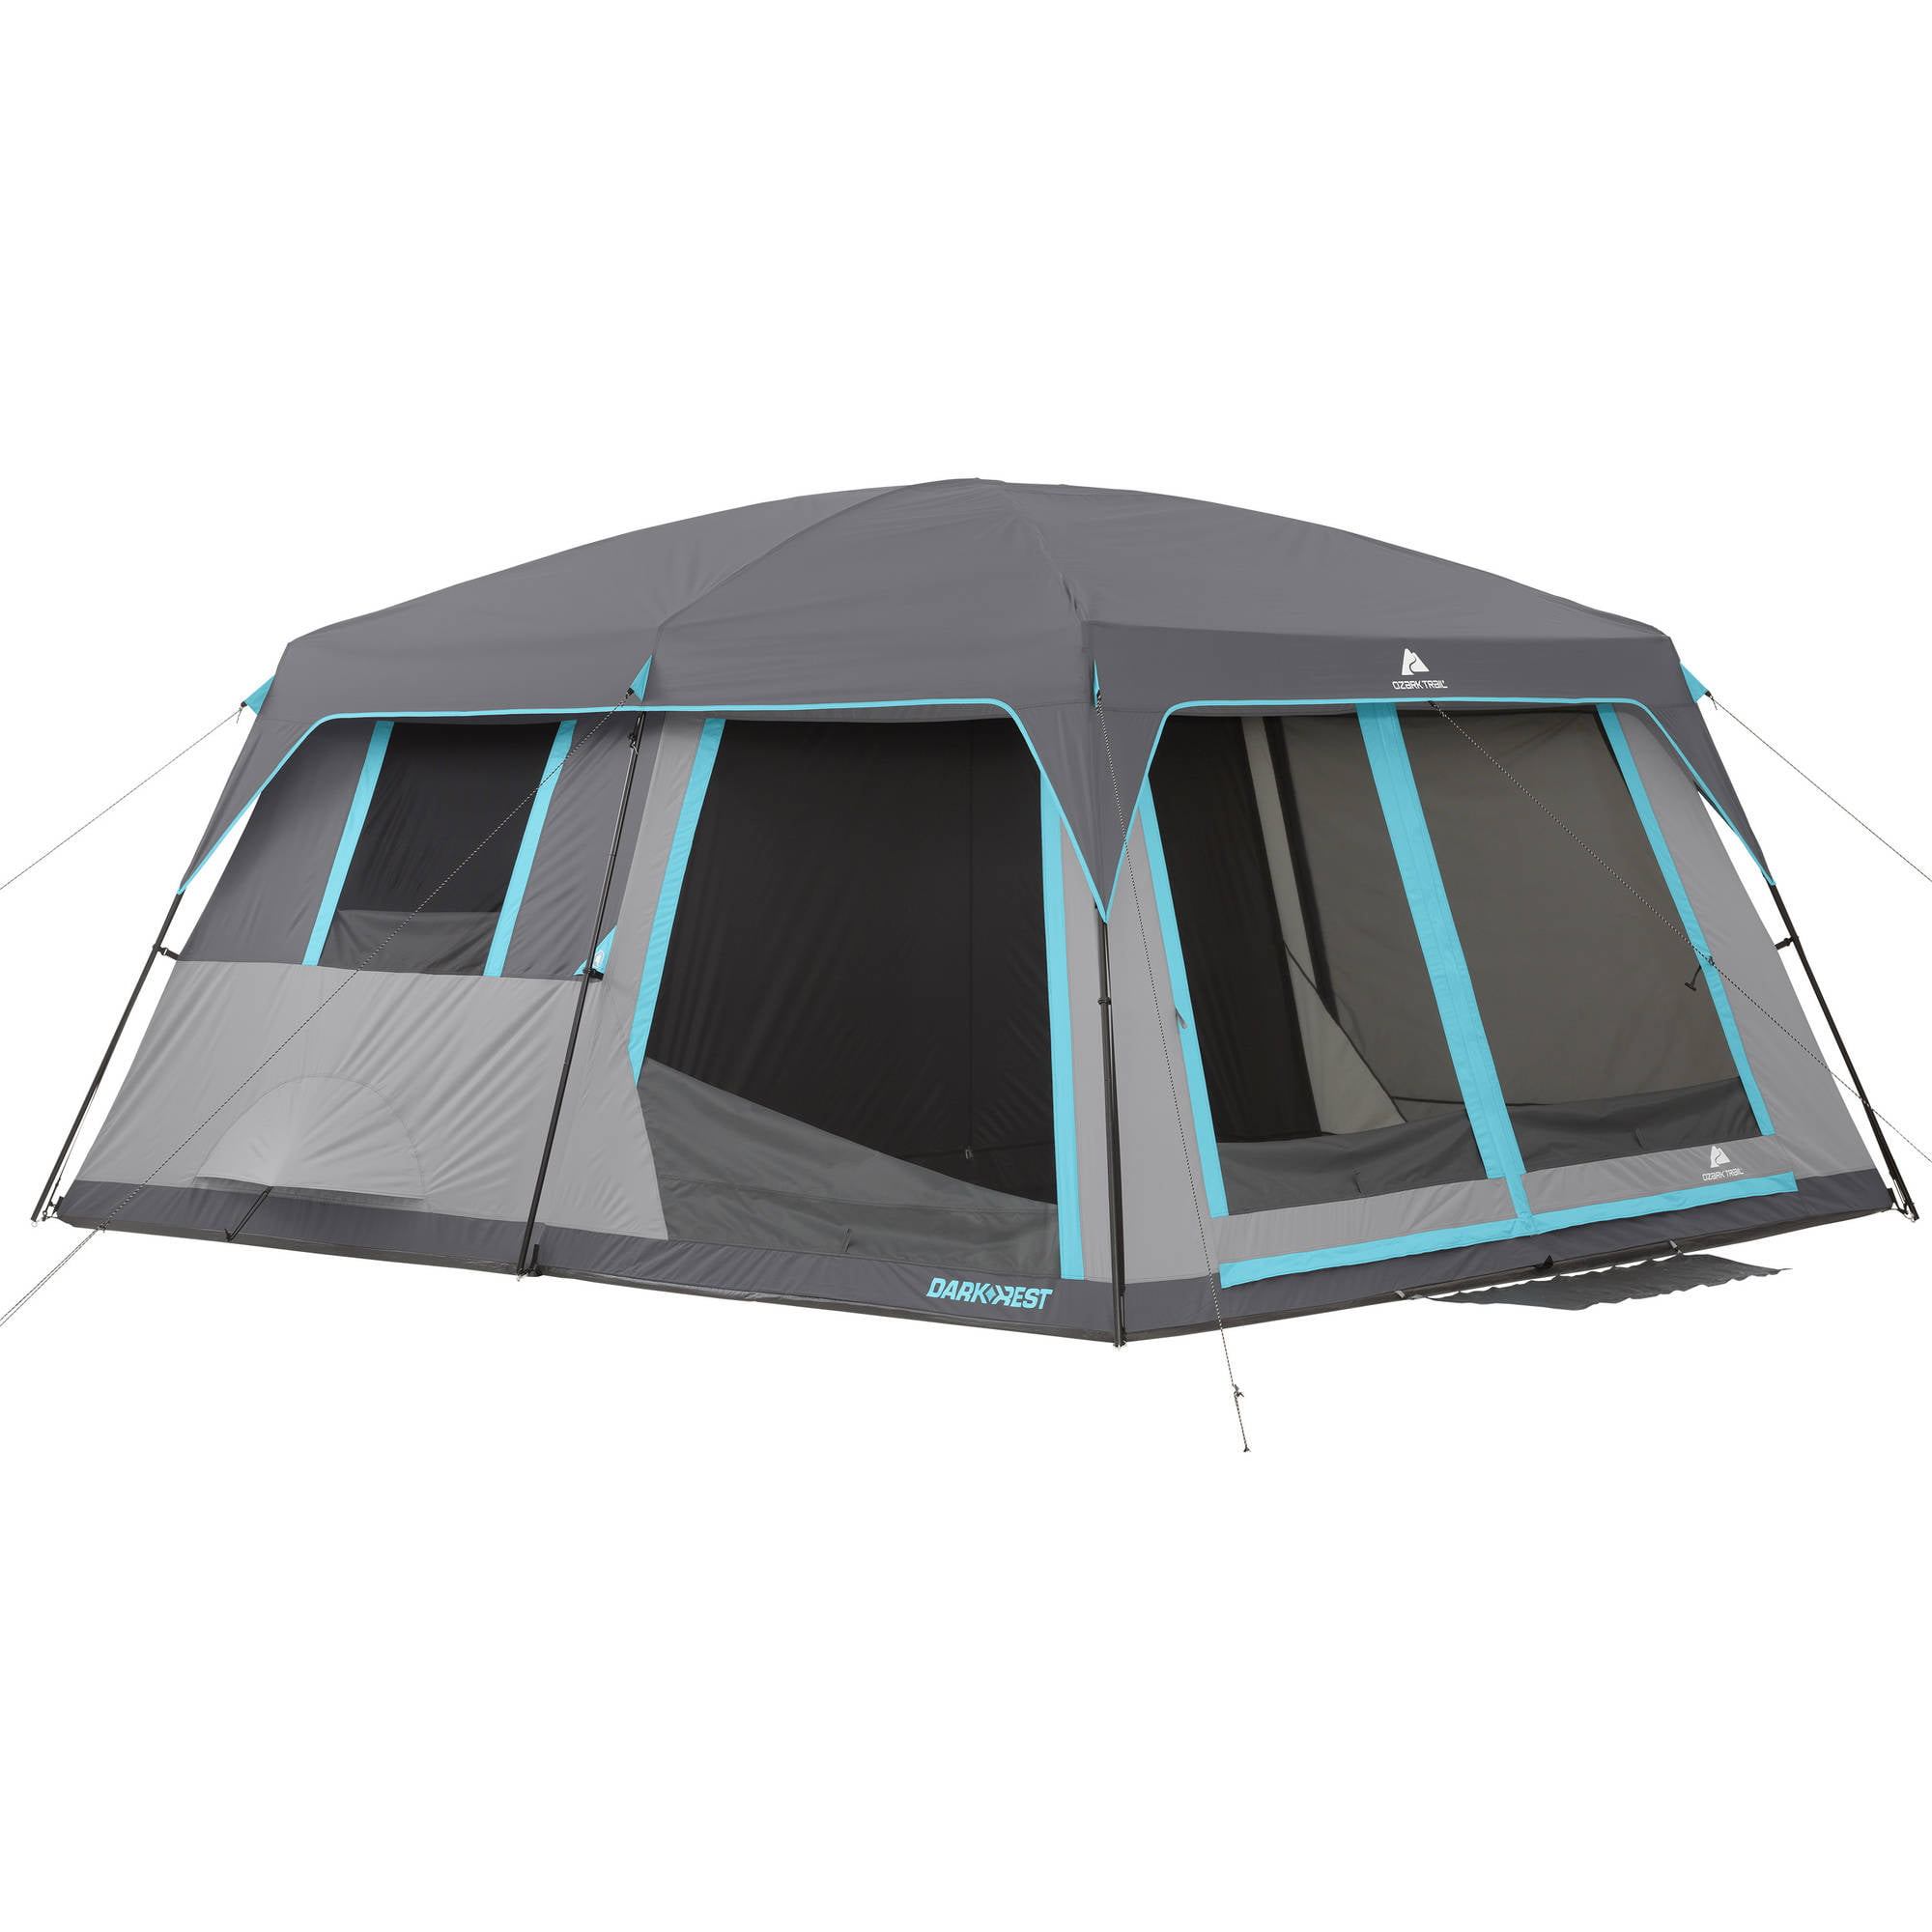 Ozark Trail 14' x 12' Half Dark Rest Frp Cabin Tent, Sleeps 12 by Bohemian Travel Gear Limited